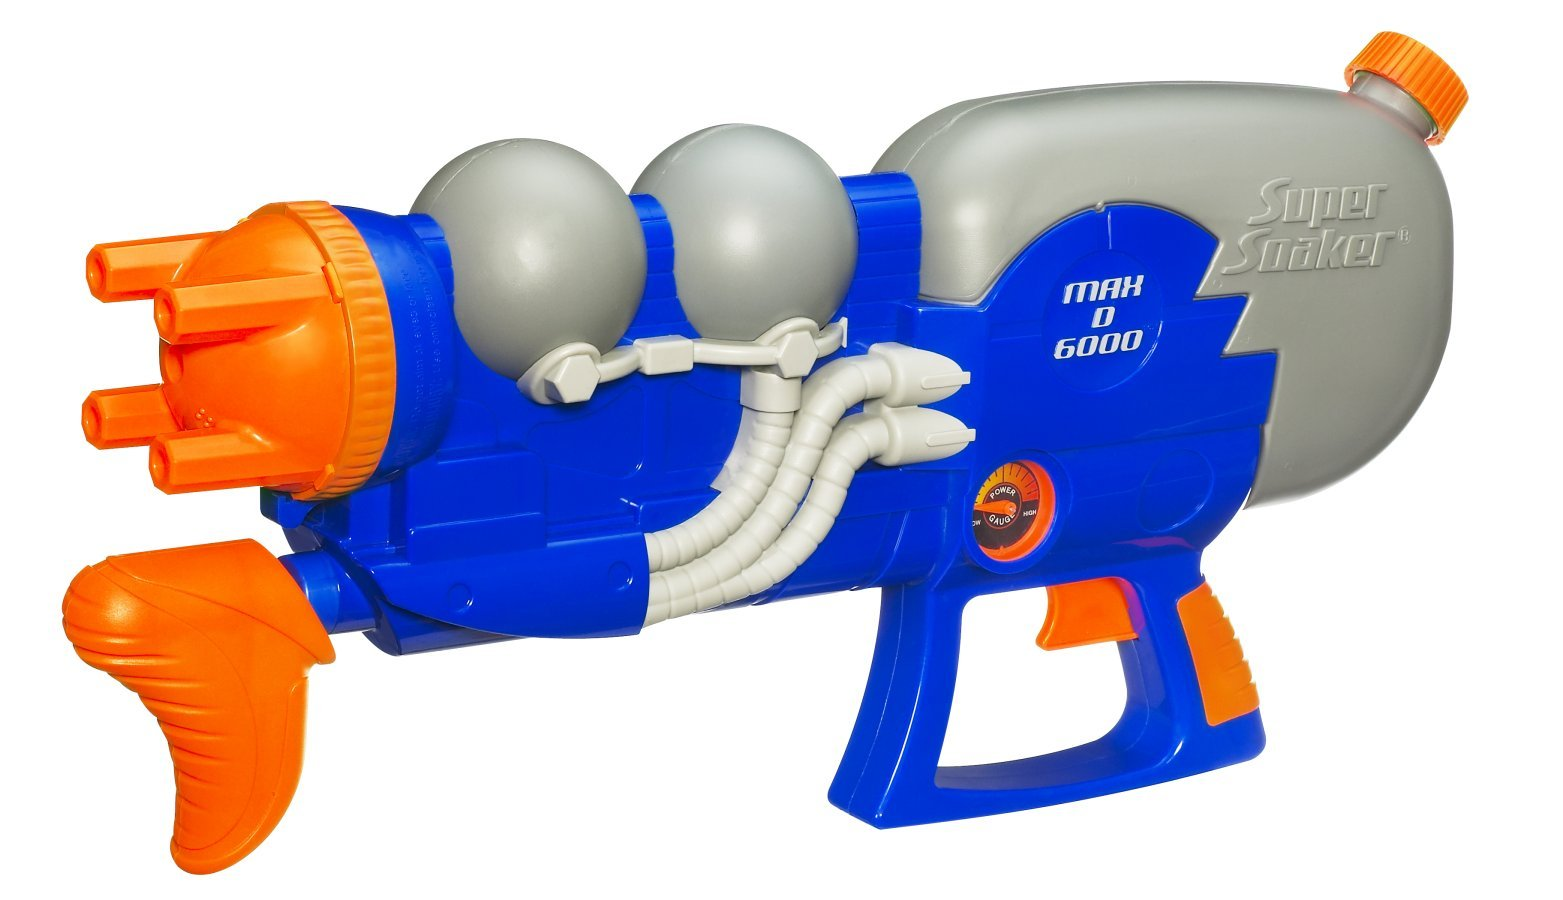 SUPERSOAKER Max D 6000 Water Blaster by SUPERSOAKER